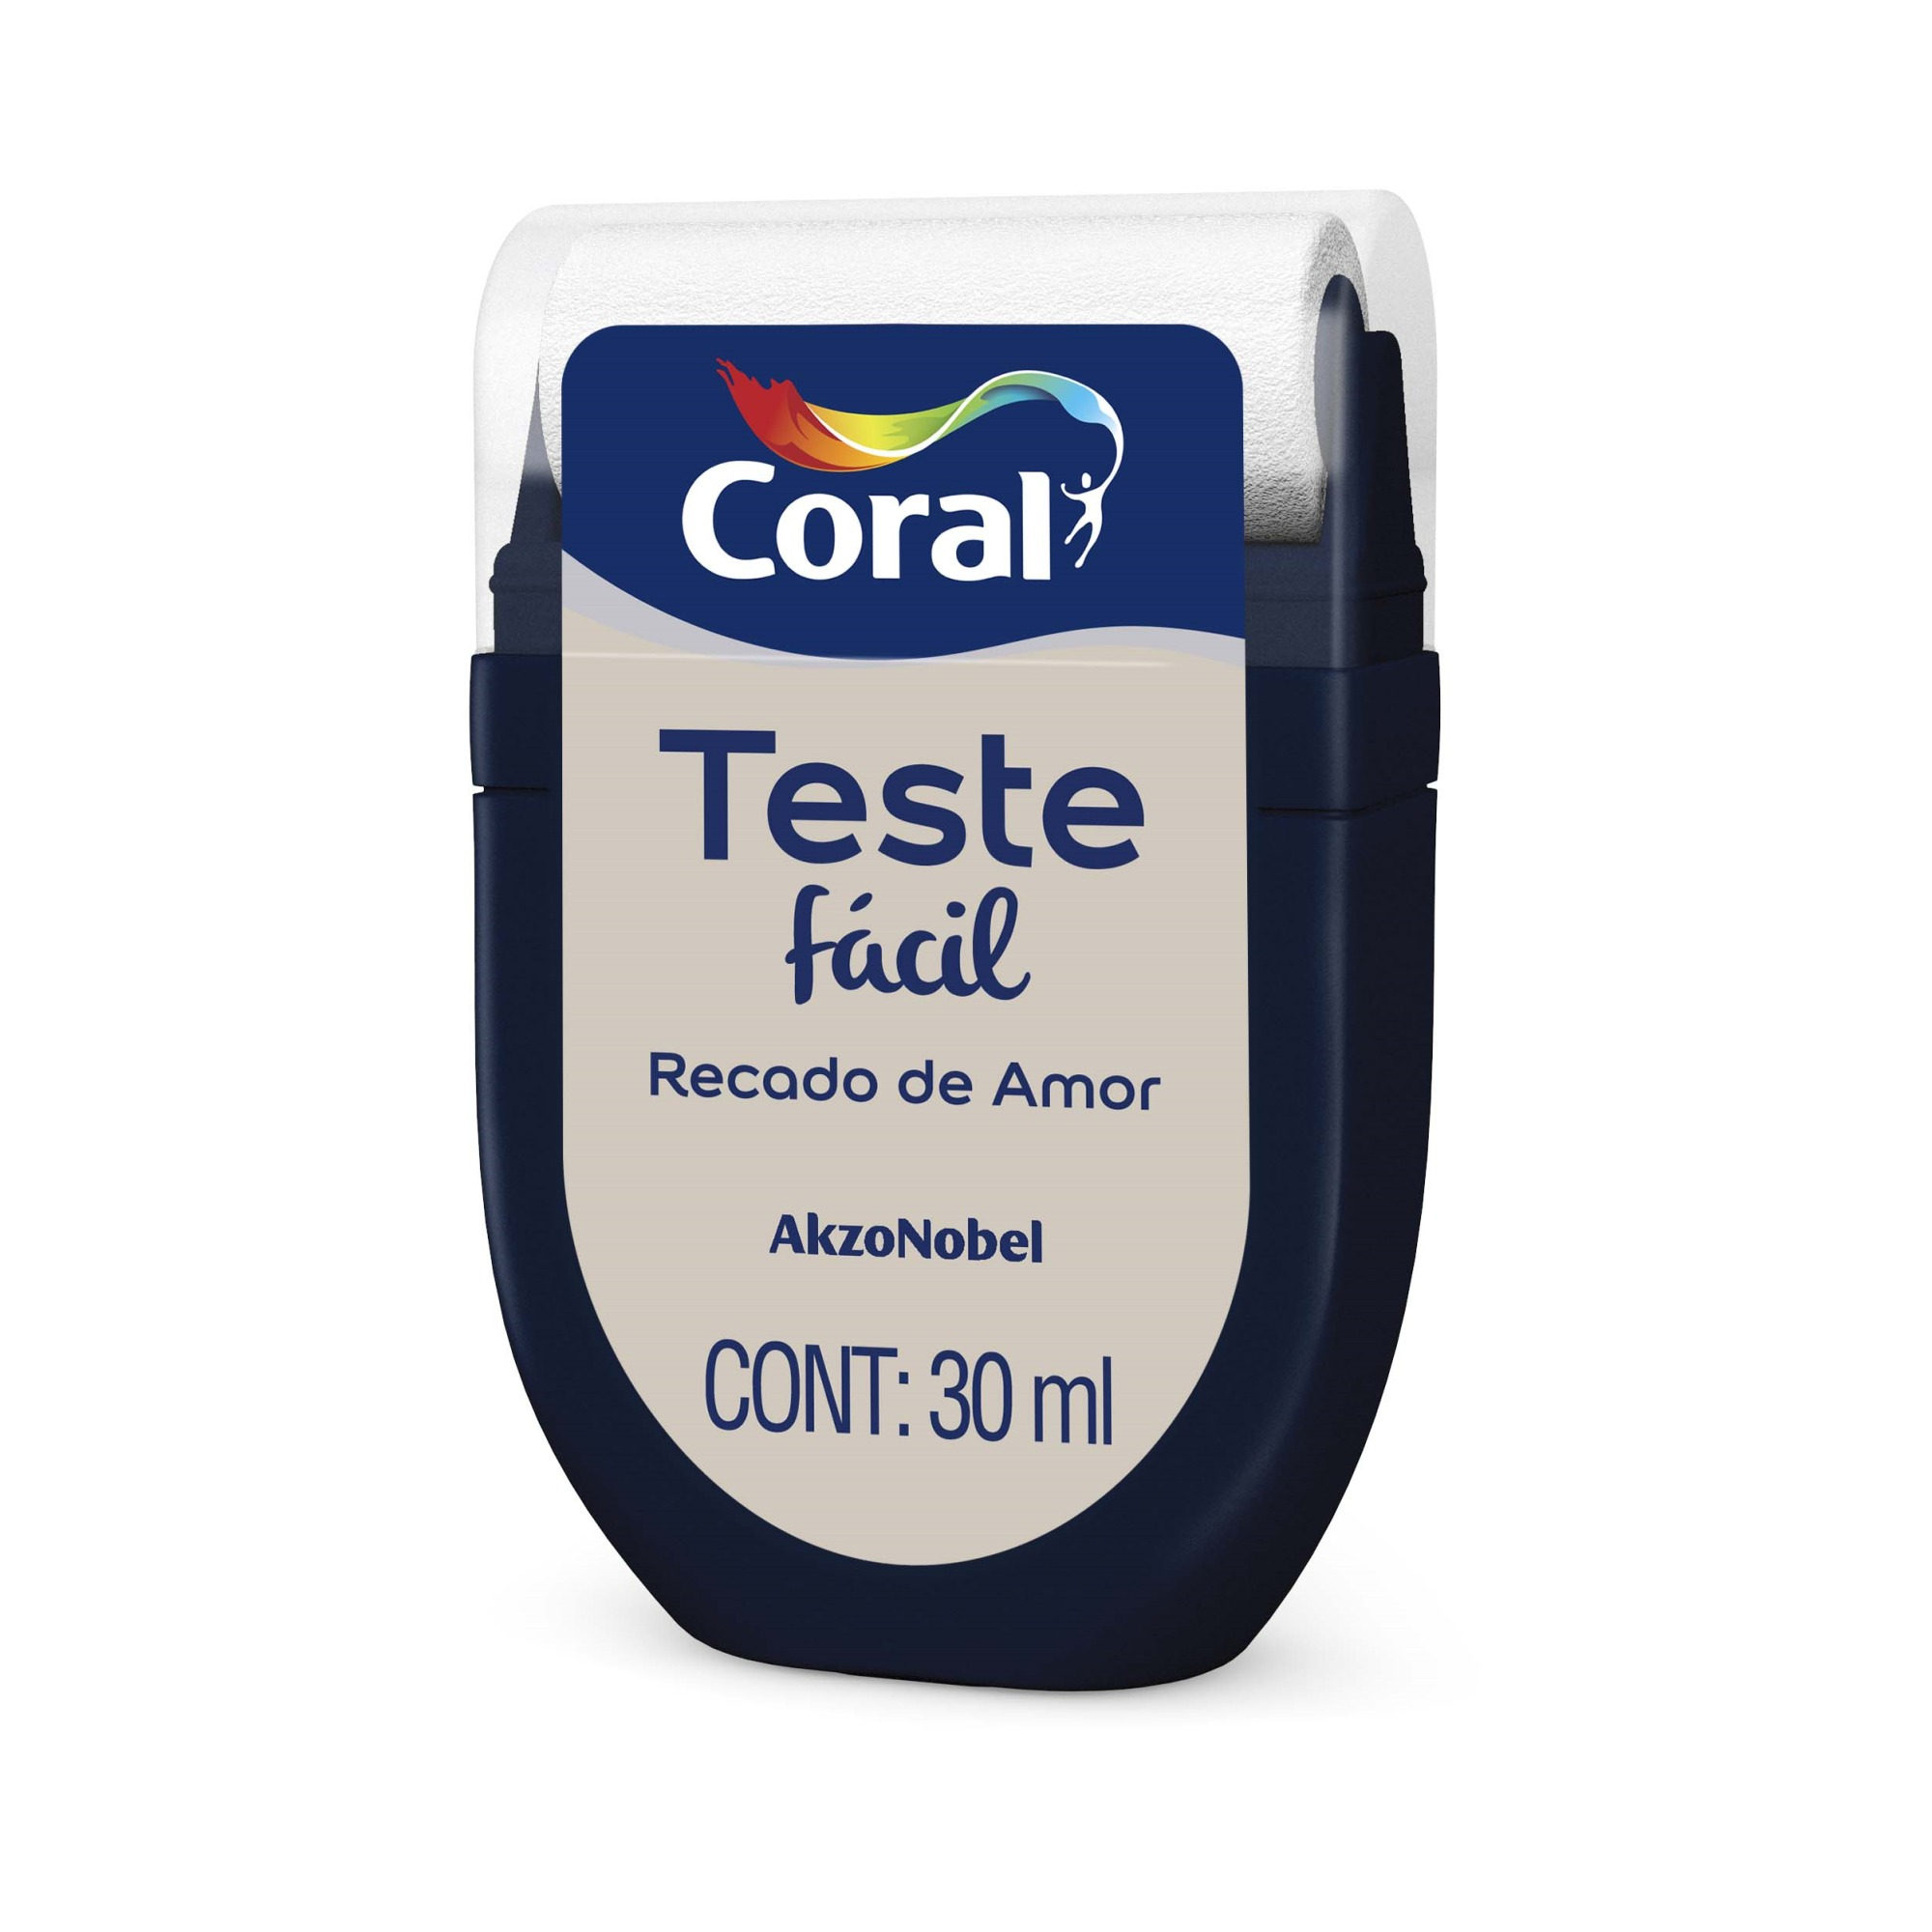 Teste Facil 30ml Recado de Amor - Coral